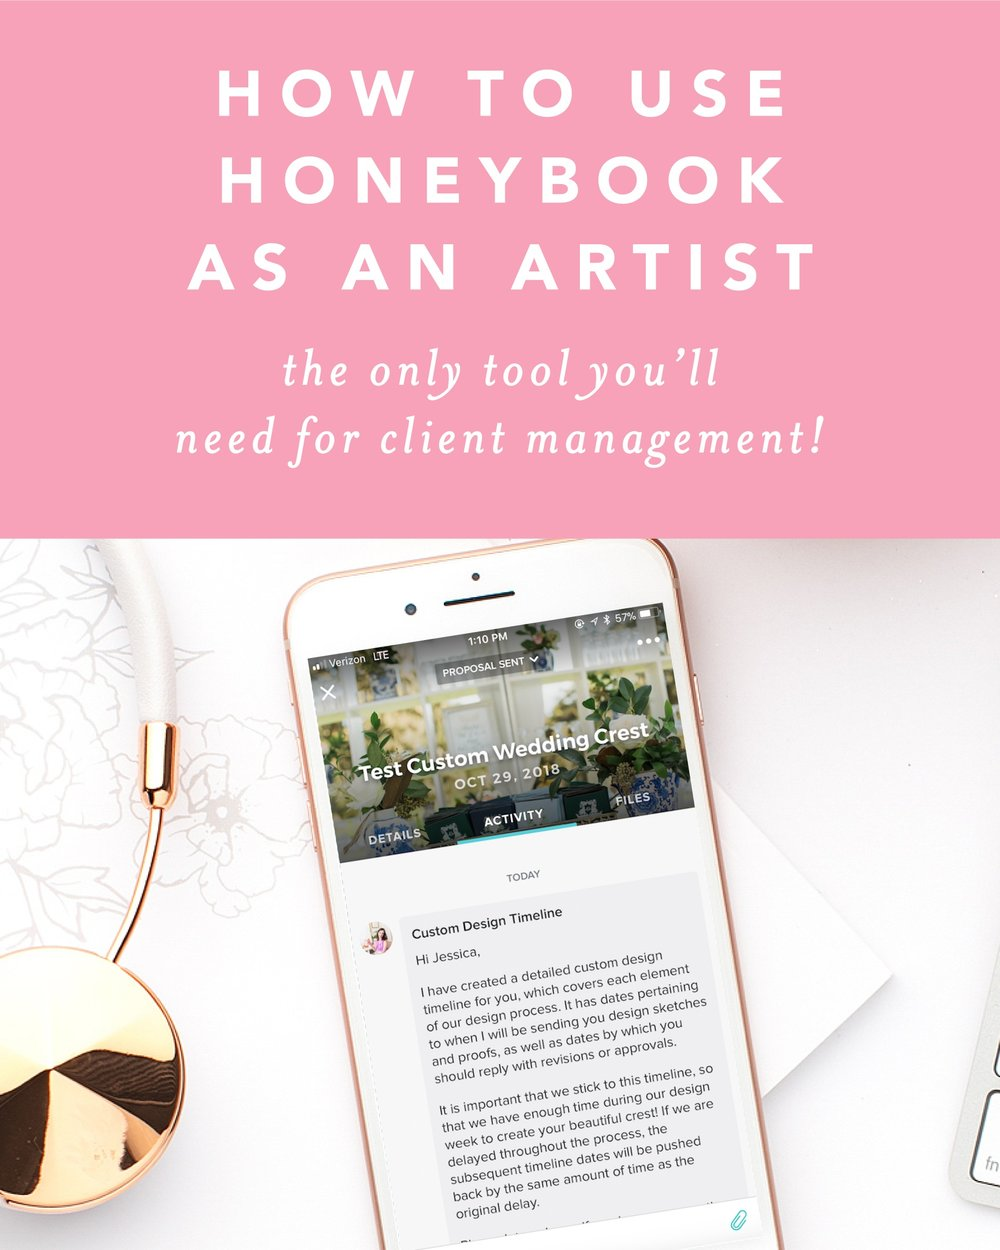 How to use HoneyBook as an artist by Simply Jessica Marie